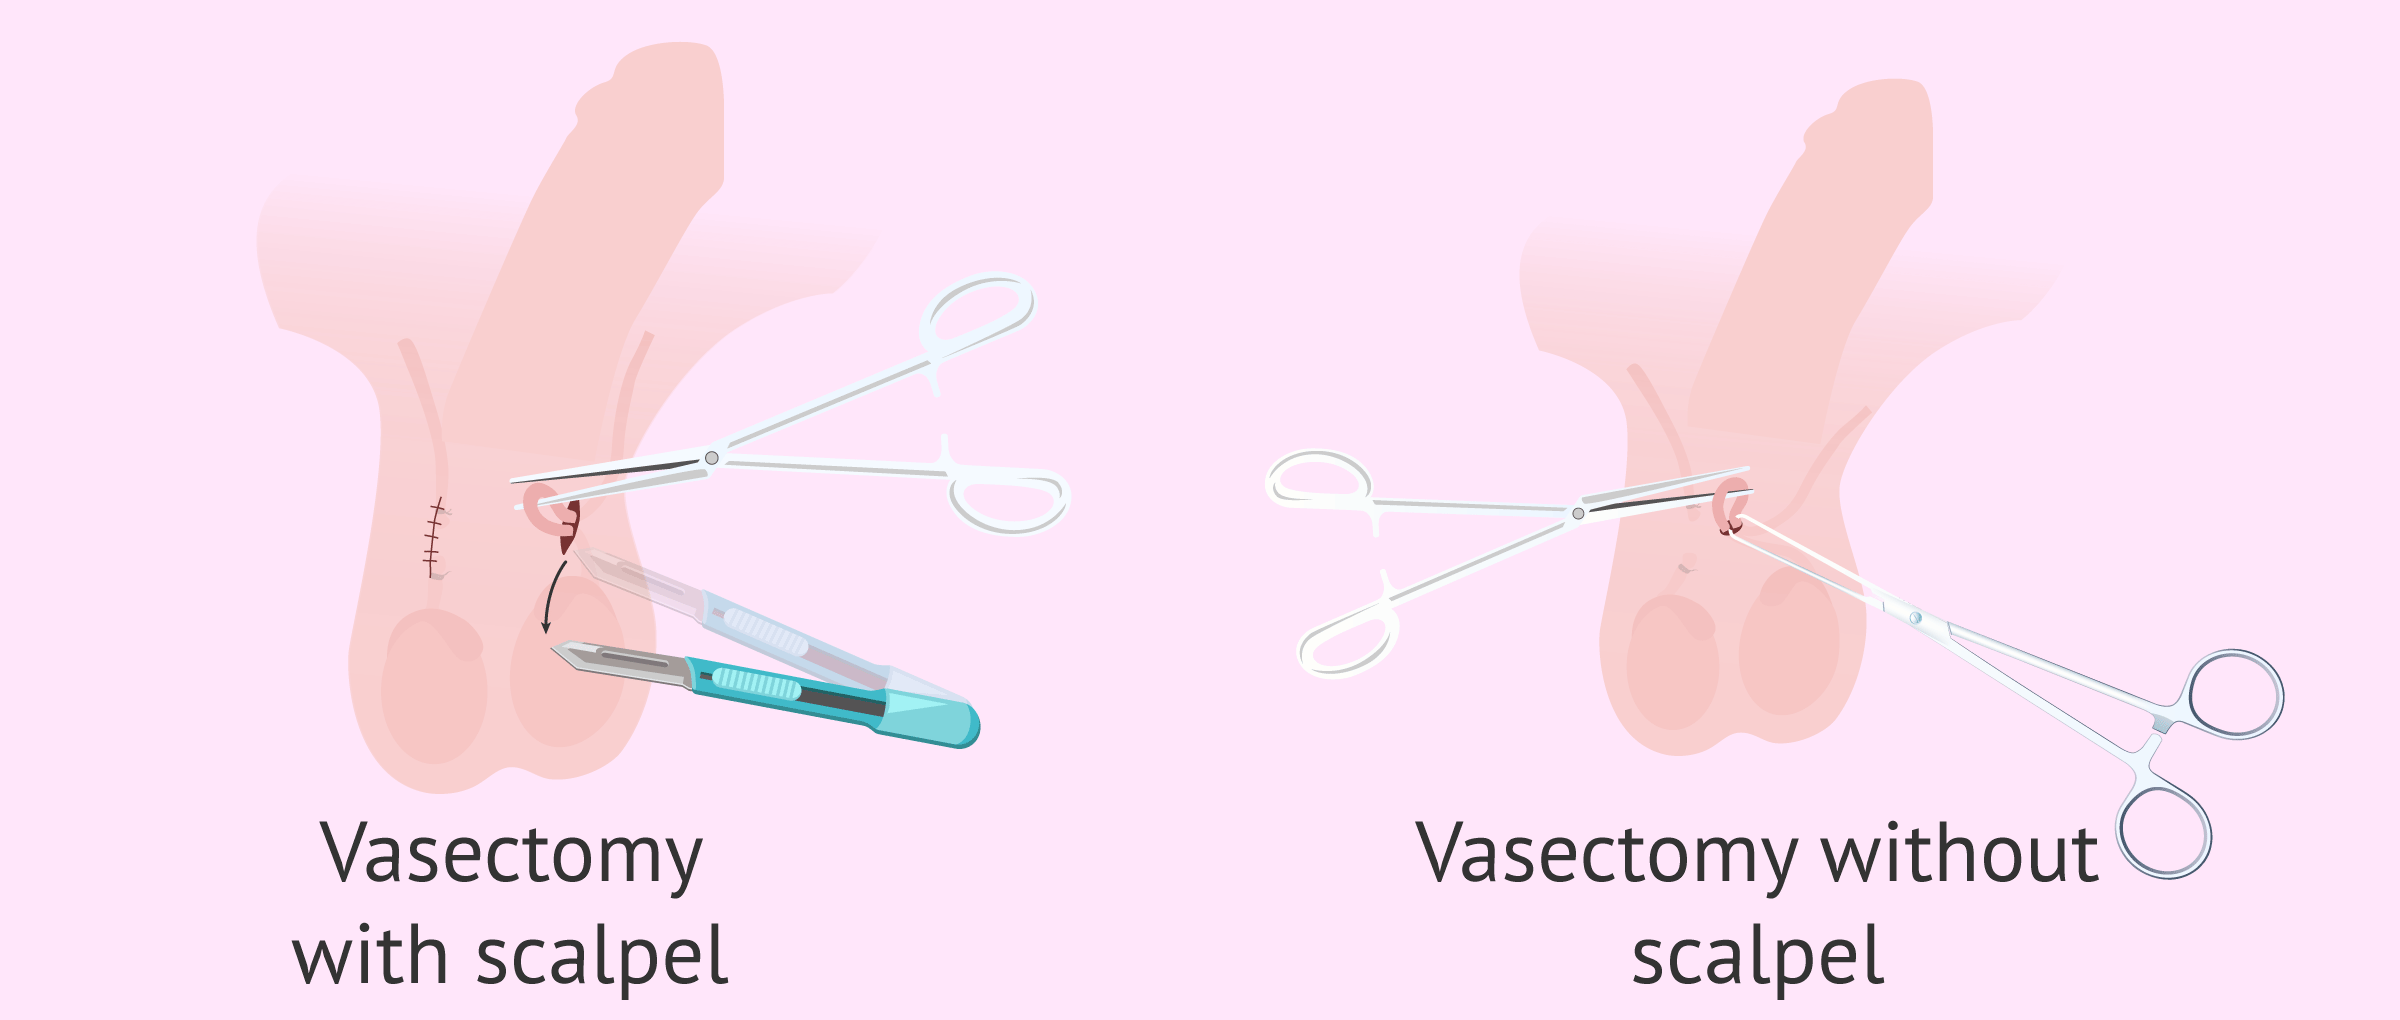 What Is a Vasectomy & How Is It Performed?